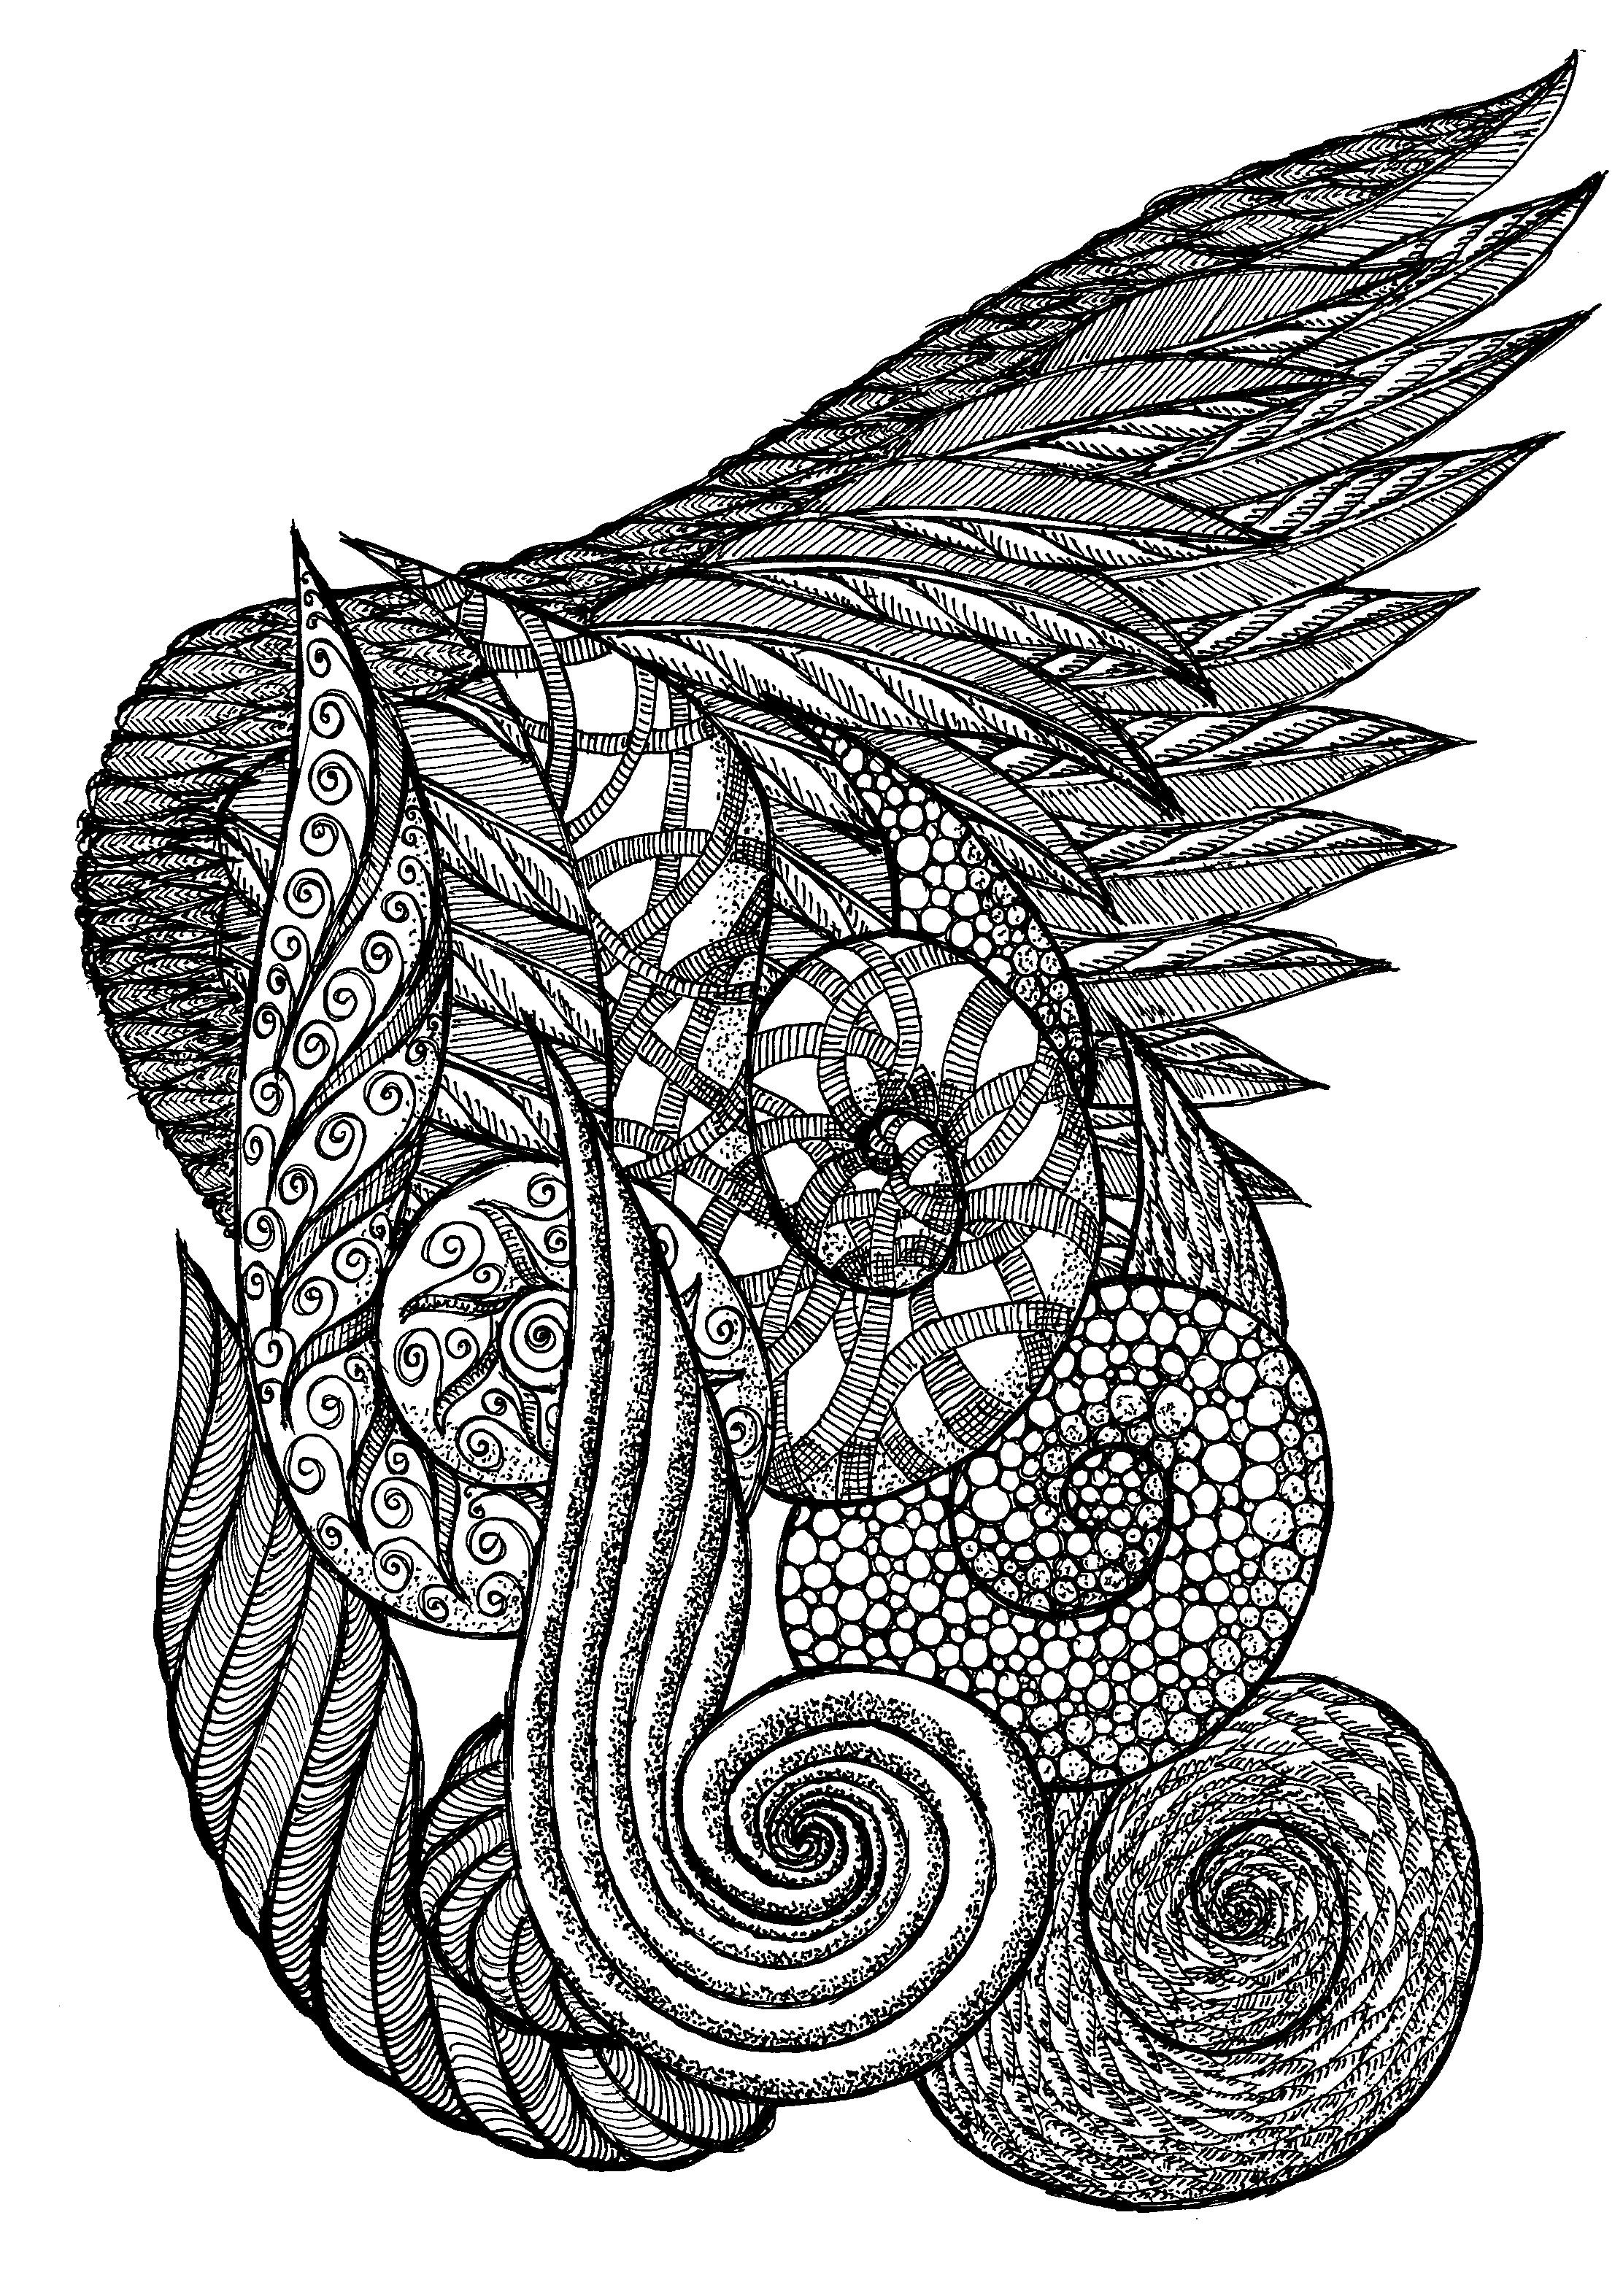 zendoodle printables one of the first zentangle or zendoodle art i did with printables zendoodle